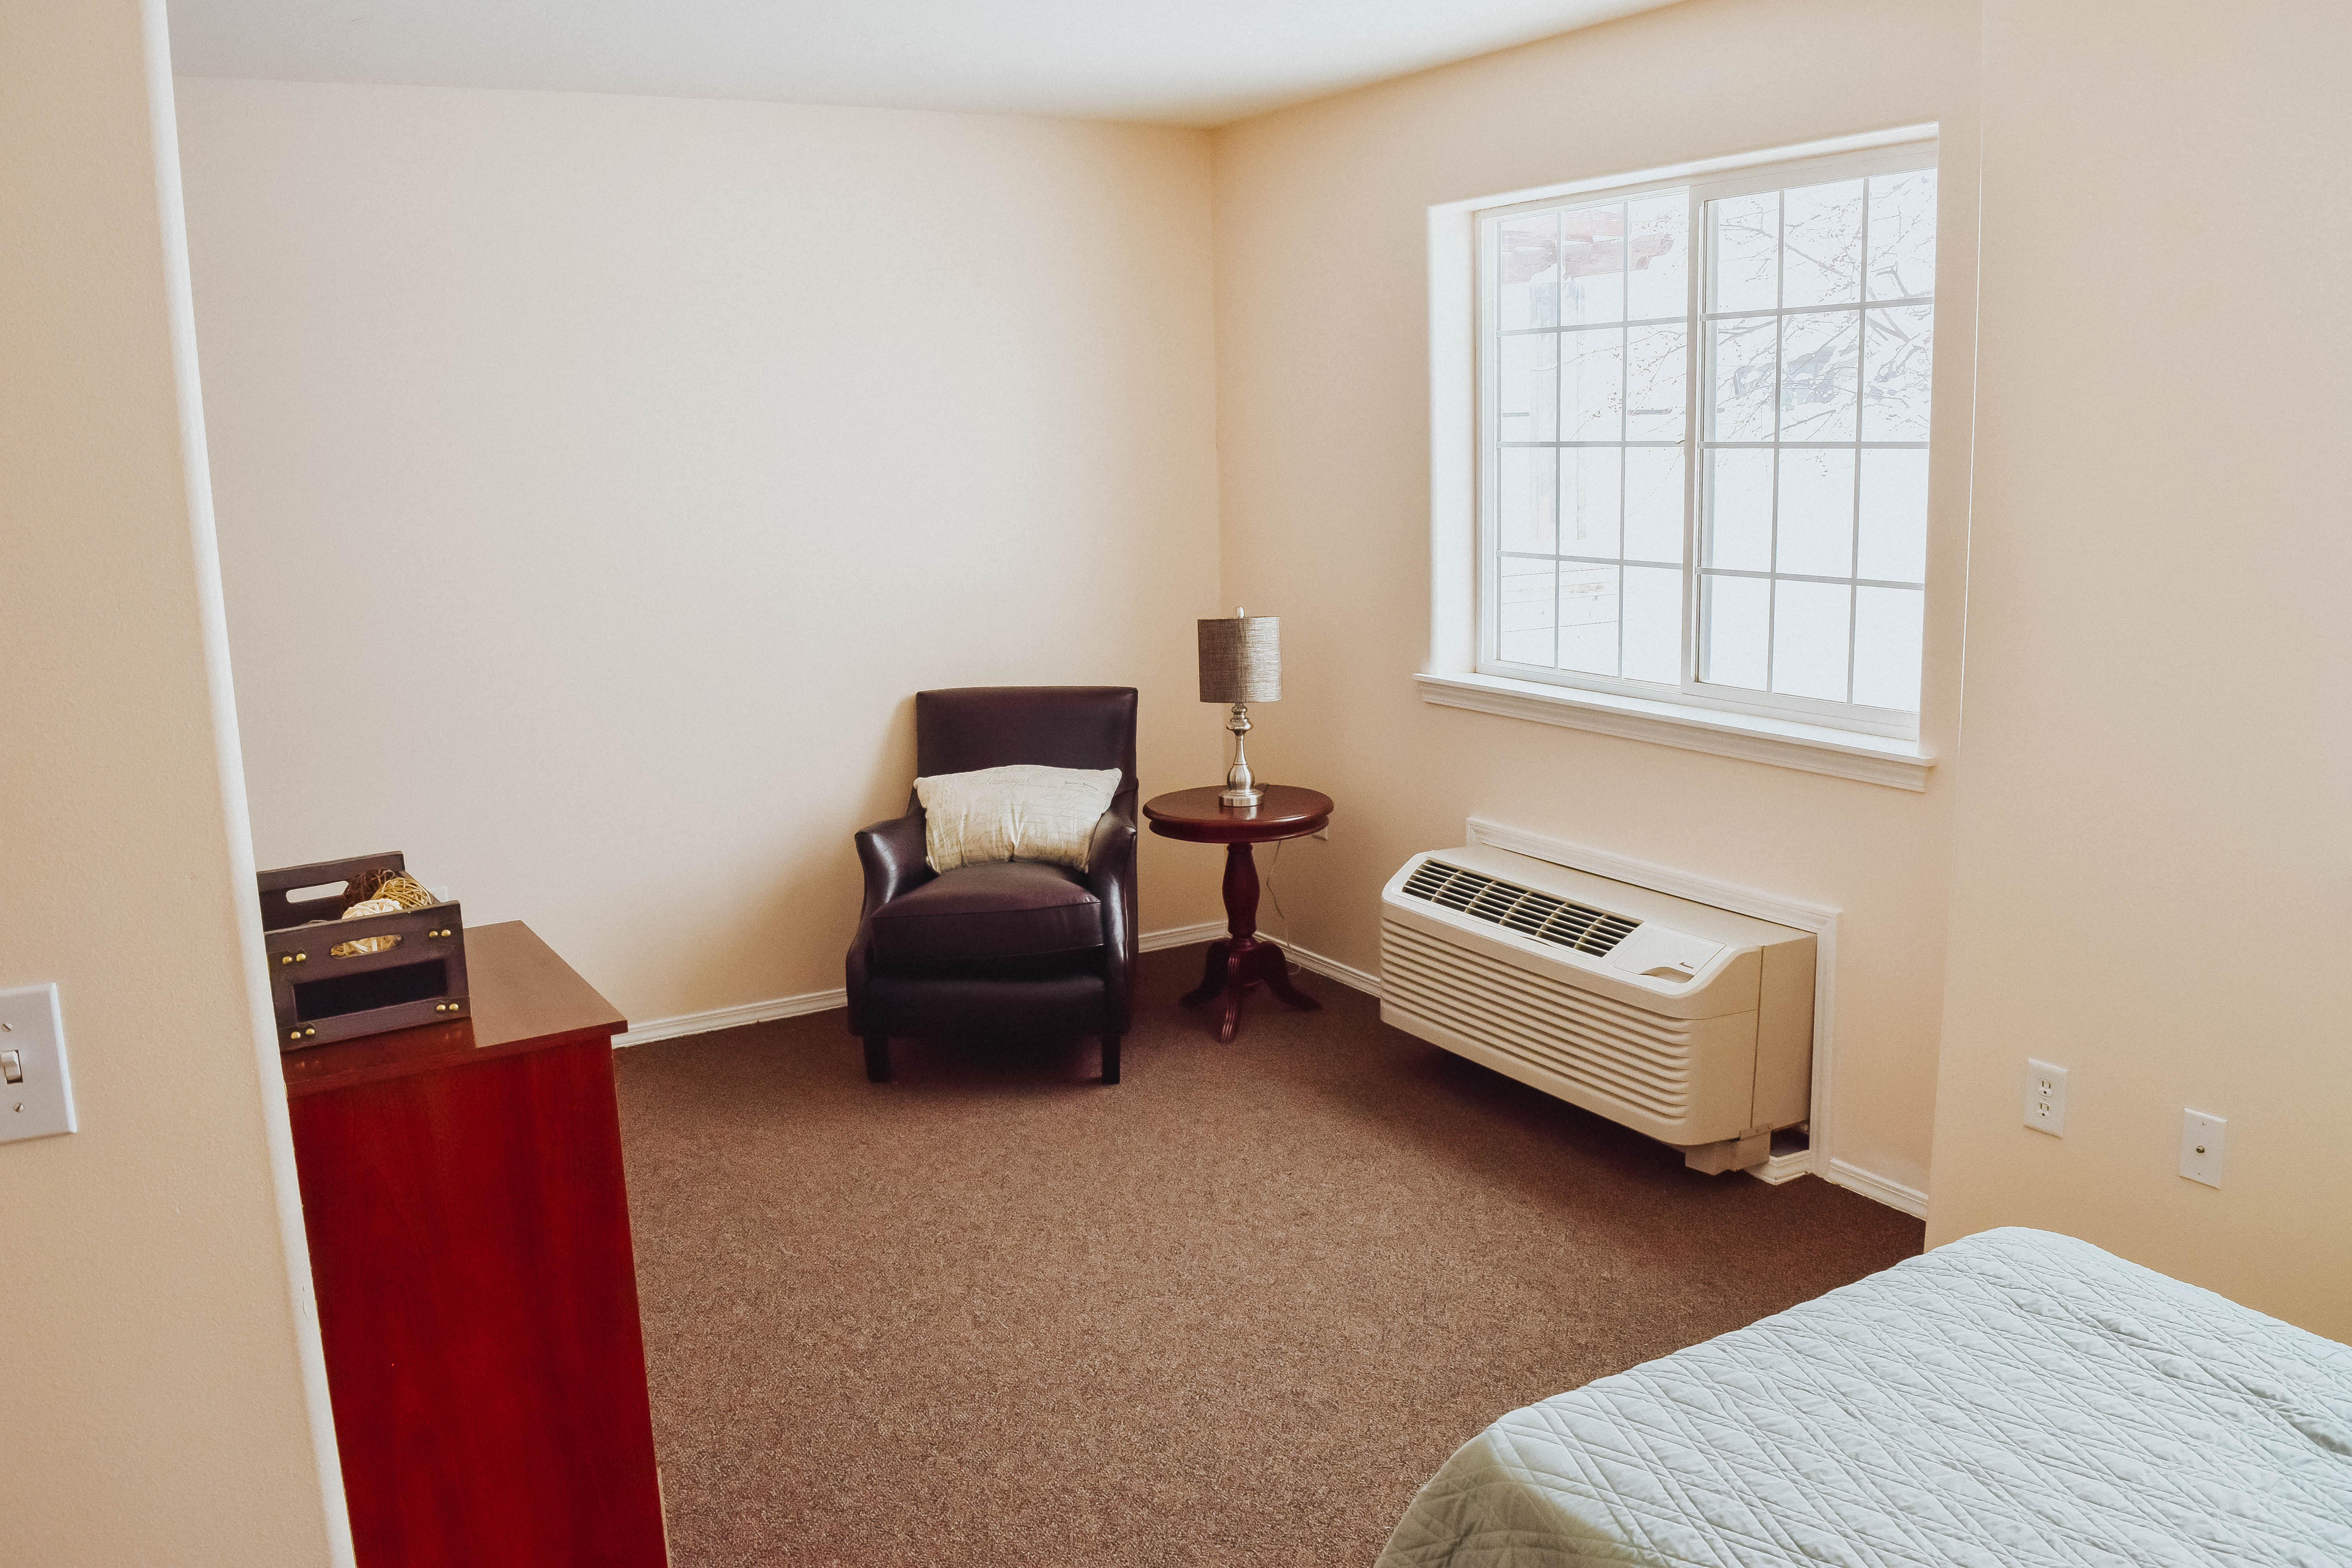 Tambree Meadows Assisted Living and Memory Care Idaho Falls ID Assisted Living Bedroom